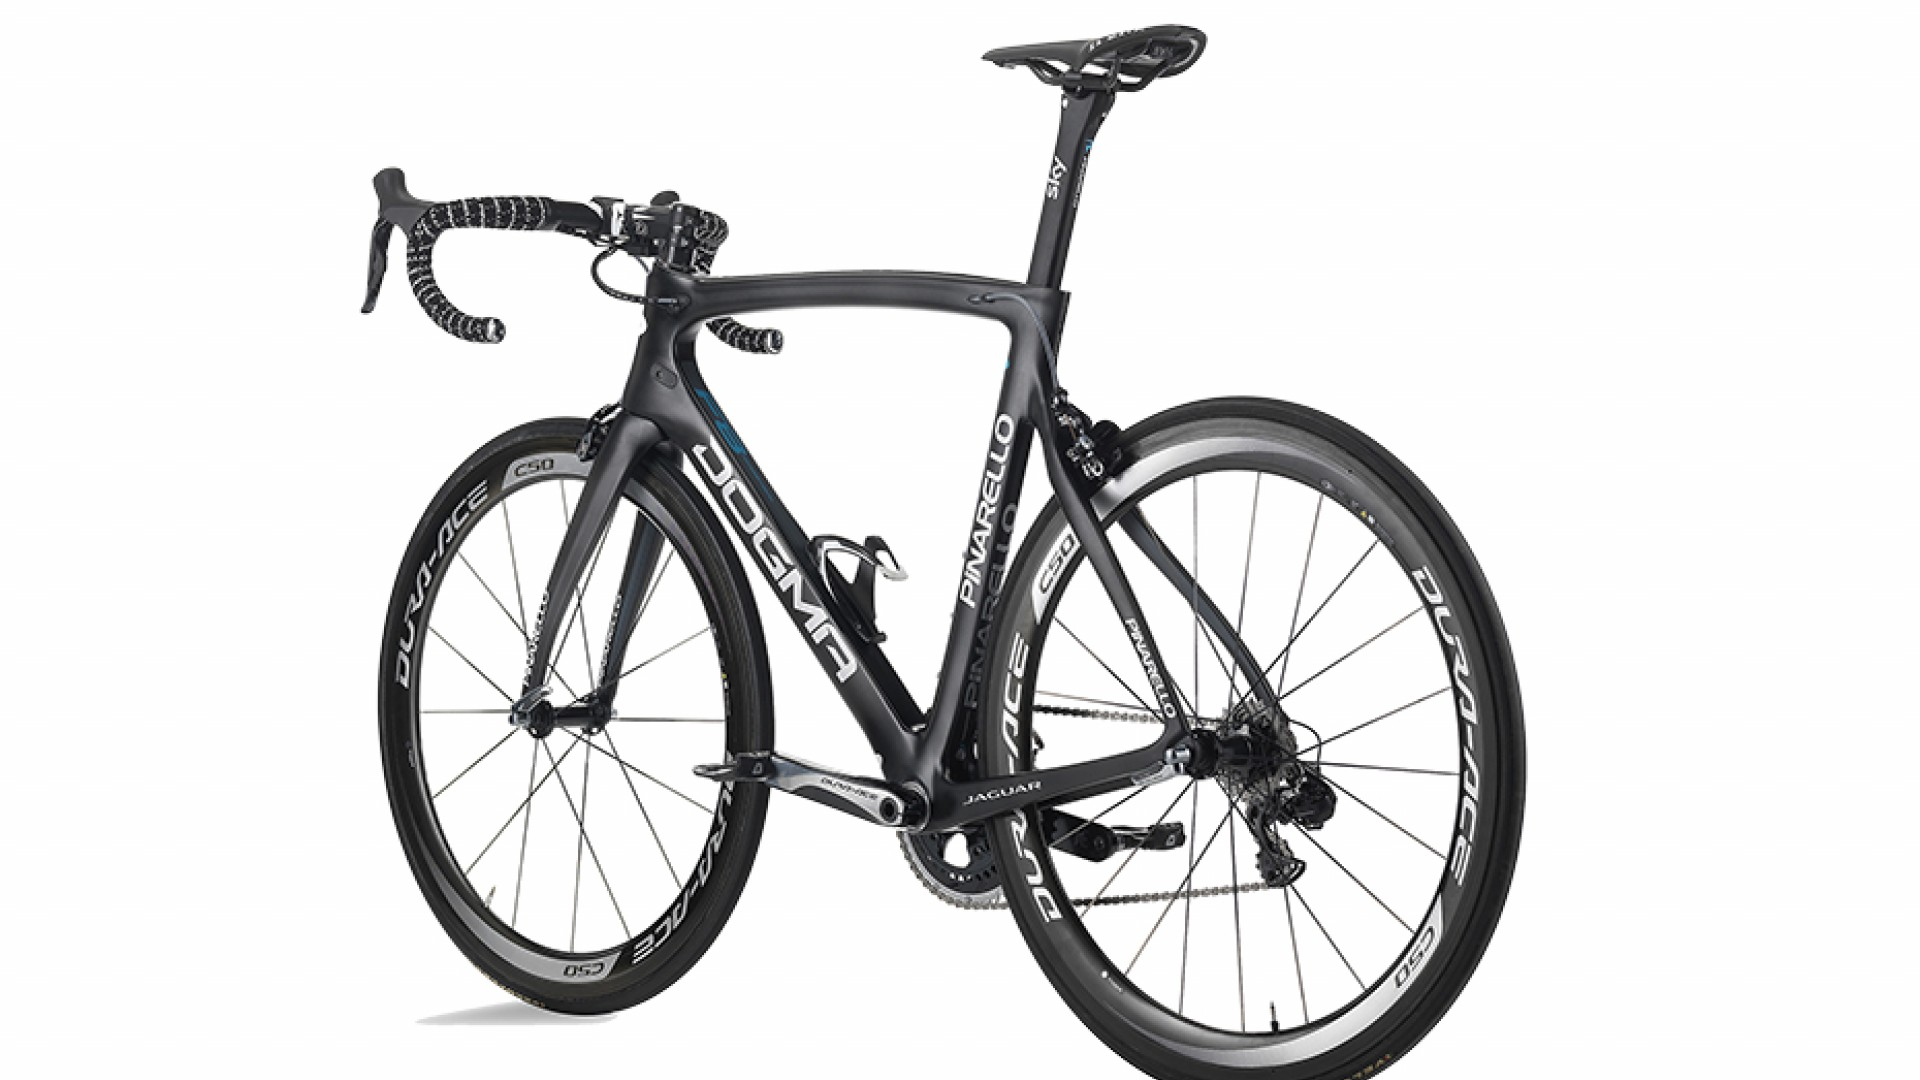 Pinarello Dogma F8 Di2, £9,500  Ridden by Team Sky for the Tour de France, the Italian team joined forces with Jaguar to make this beauty for the British team.